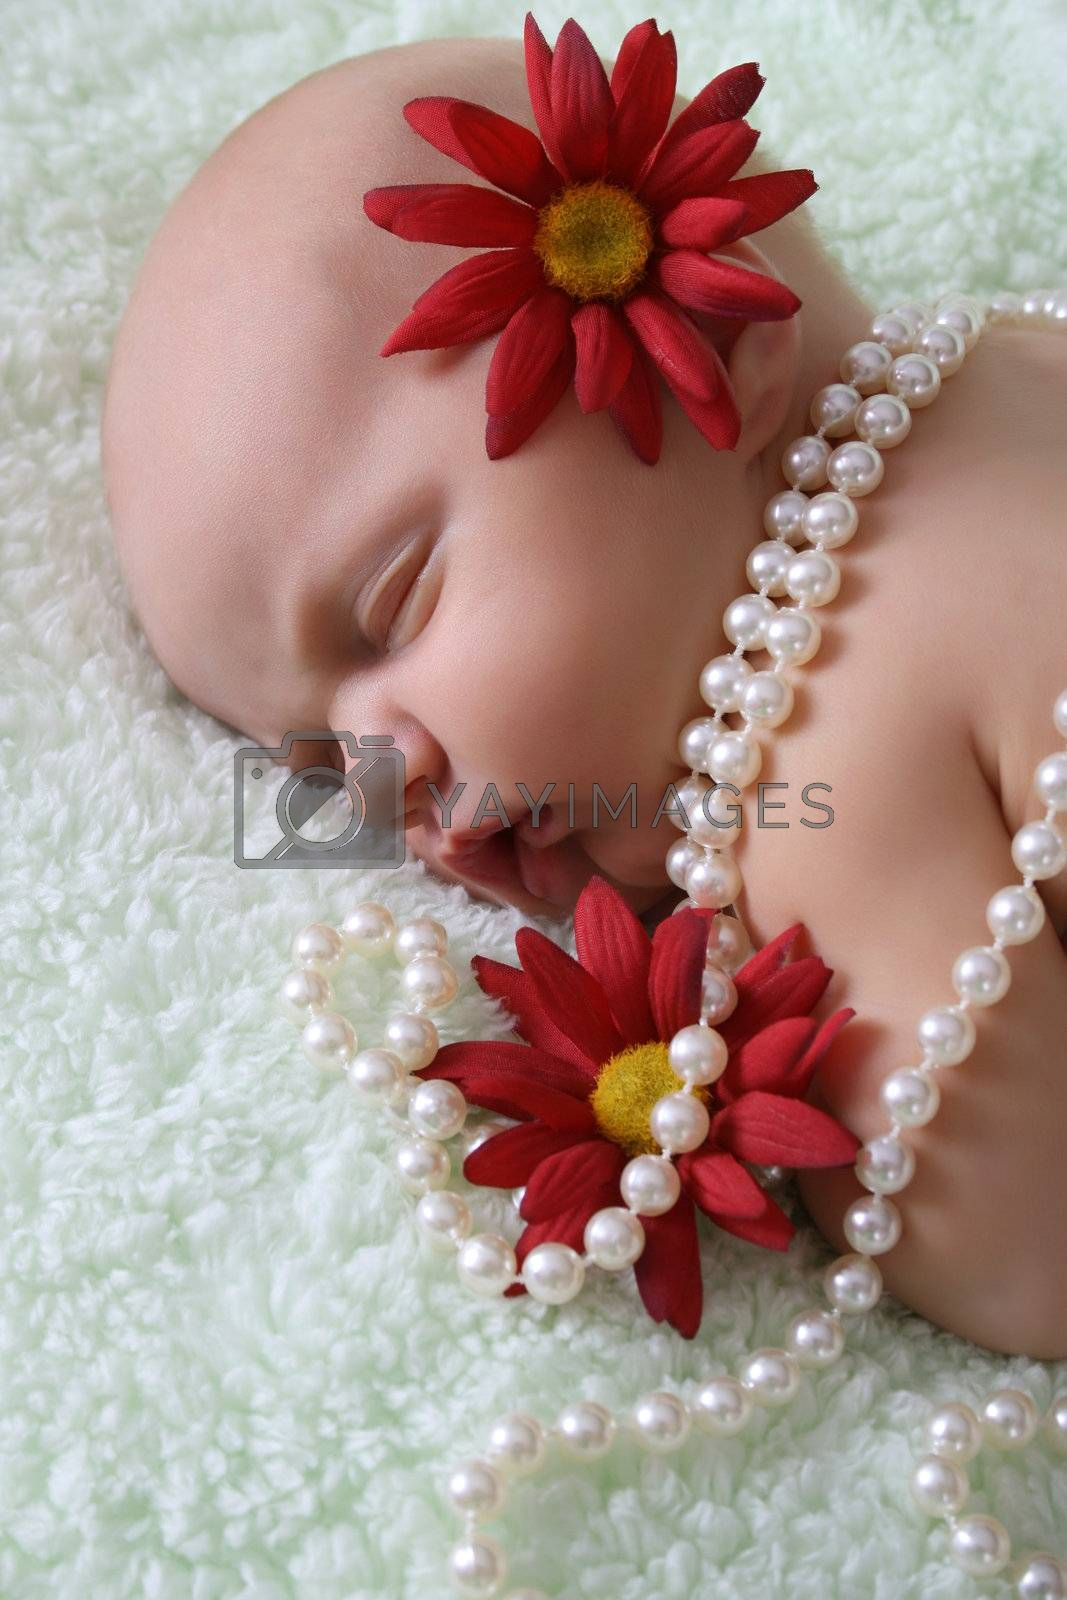 Beautiful newborn baby girl with flowers and pearls